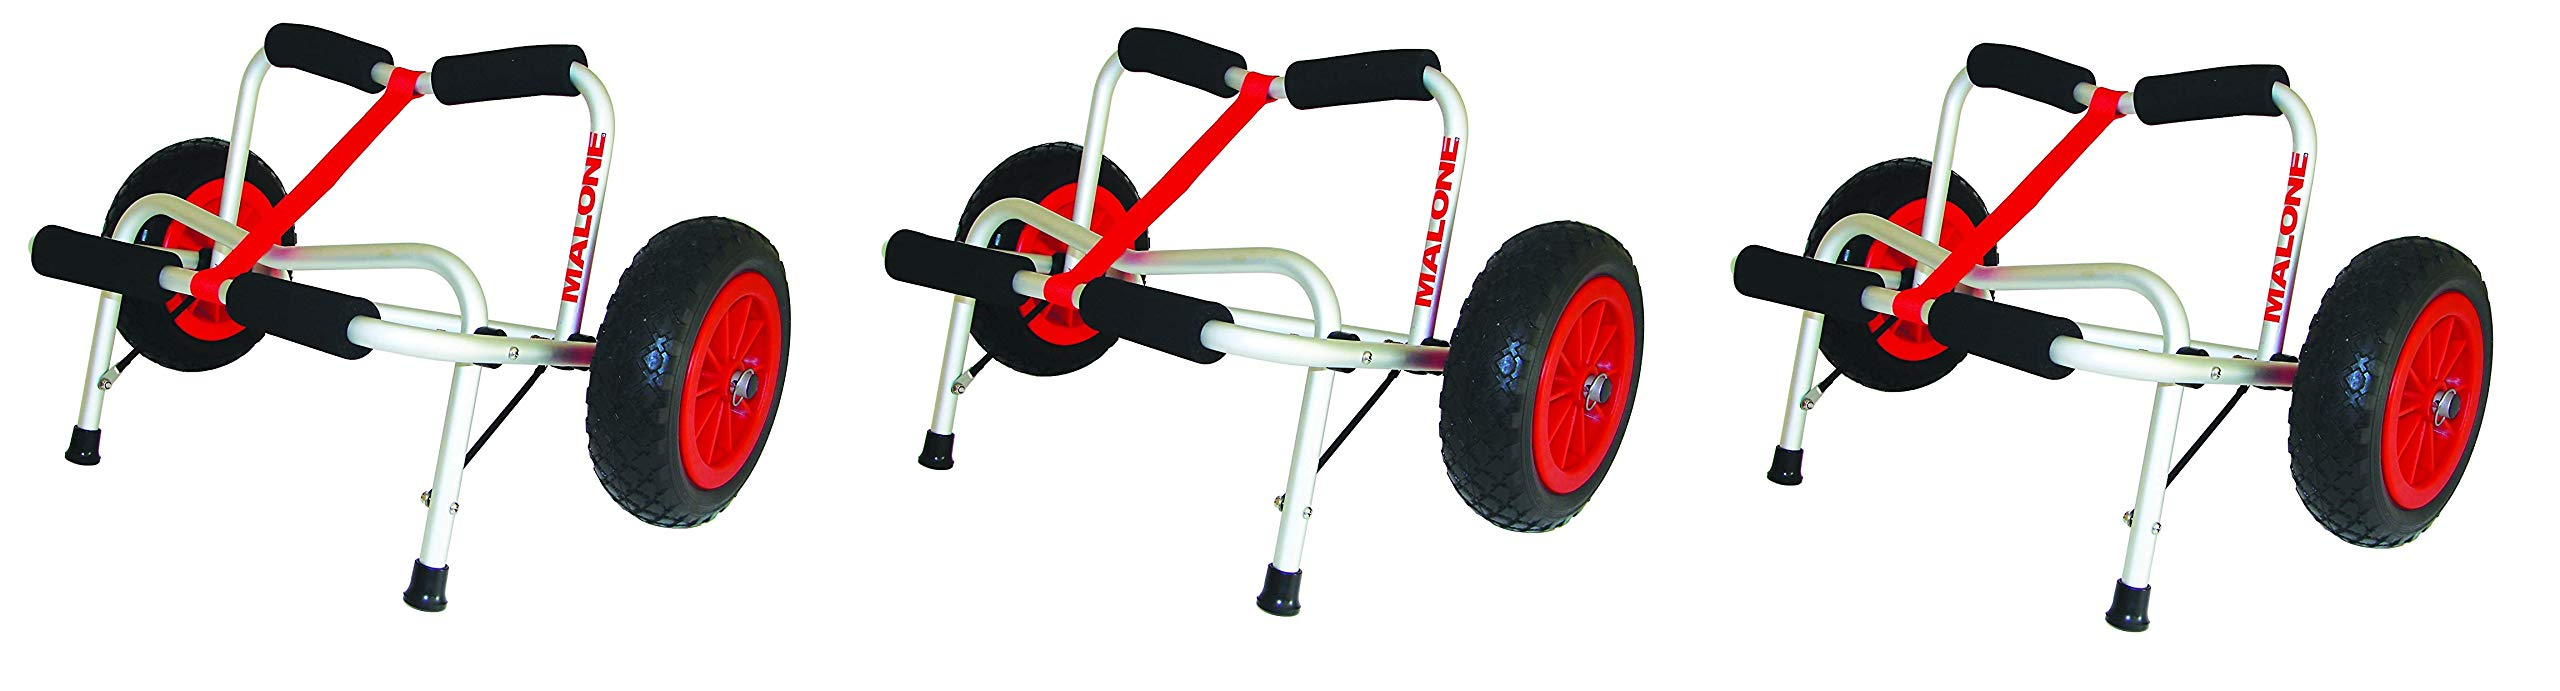 Malone Clipper Deluxe Universal Kayak Cart (Pack of 3) by Malone